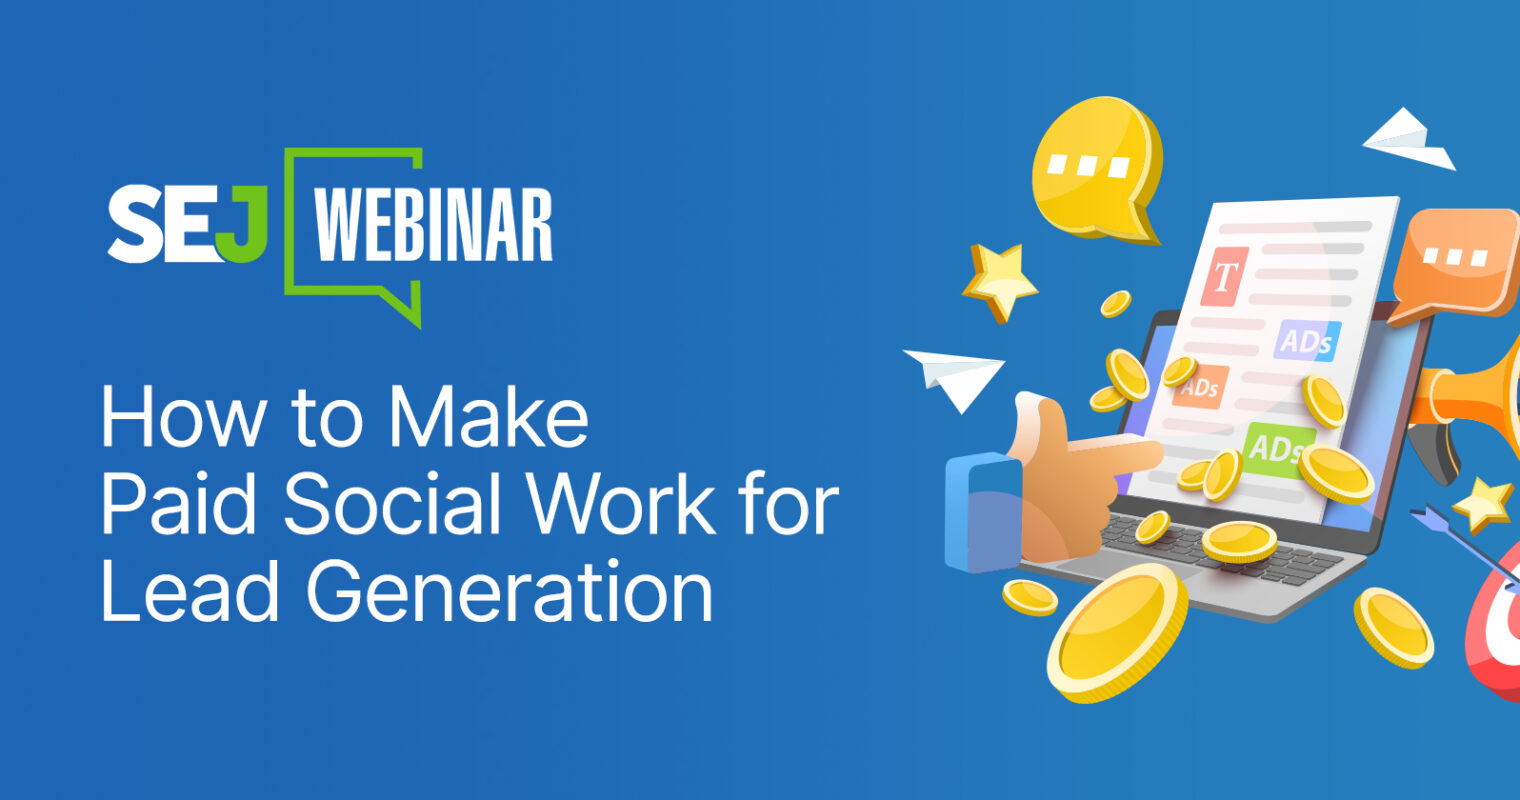 How to Make Paid Social Work for Lead Generation [Webinar]